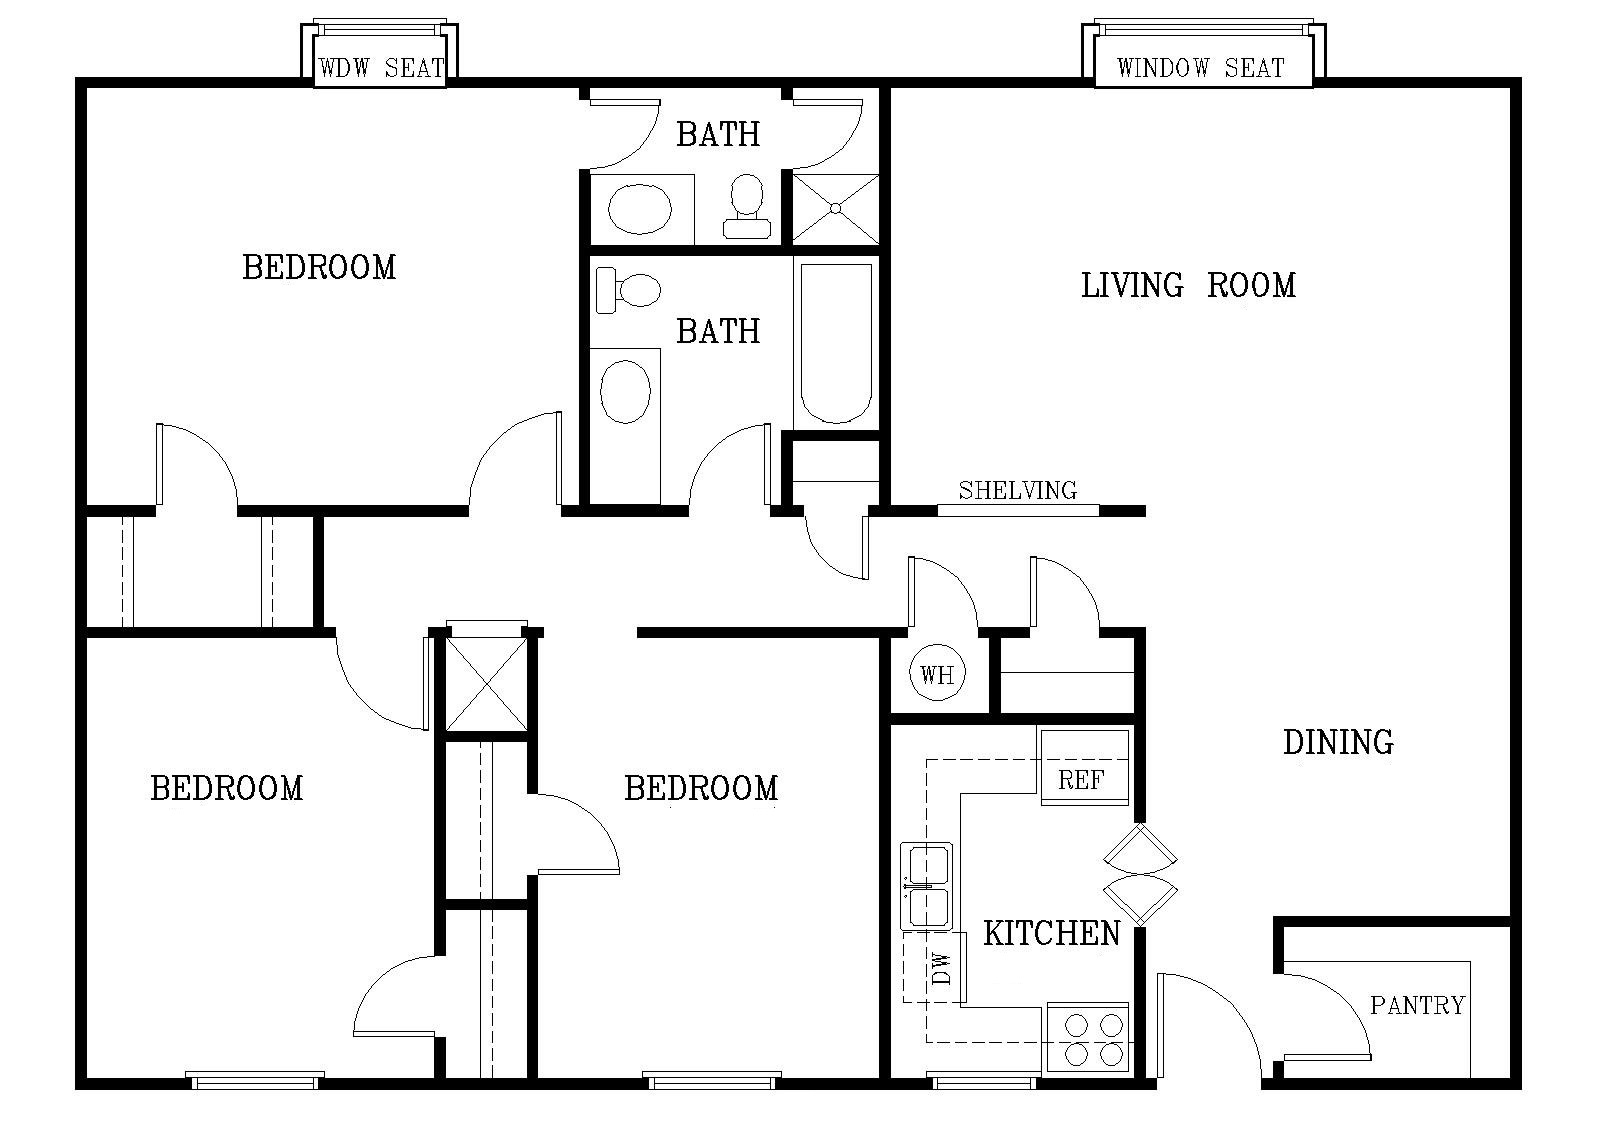 Standard Size Of Room In A Residential Buildings